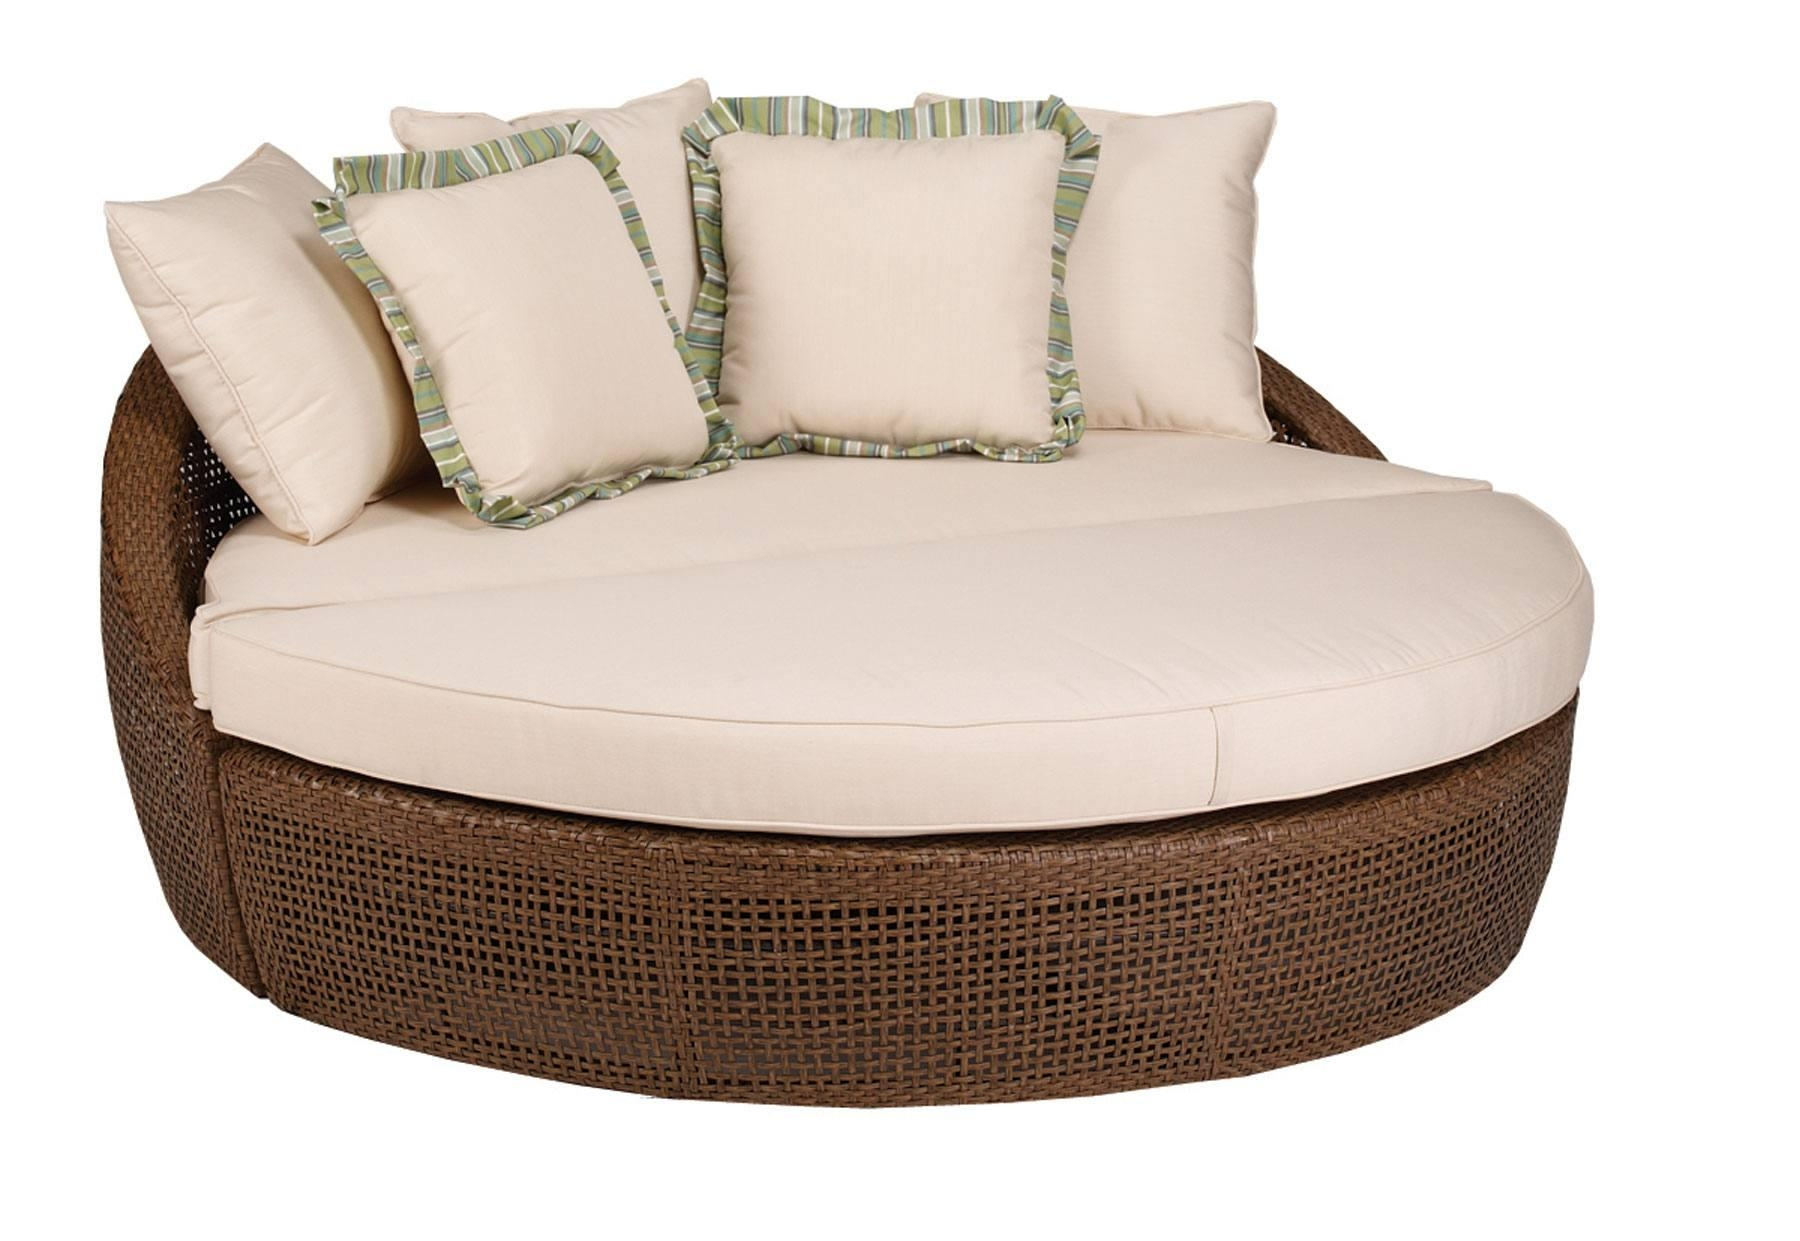 Lounge Chair Furniture Chaise Chairs And Inspiration Decorating Pertaining To Lounge Sofas And Chairs (View 7 of 20)